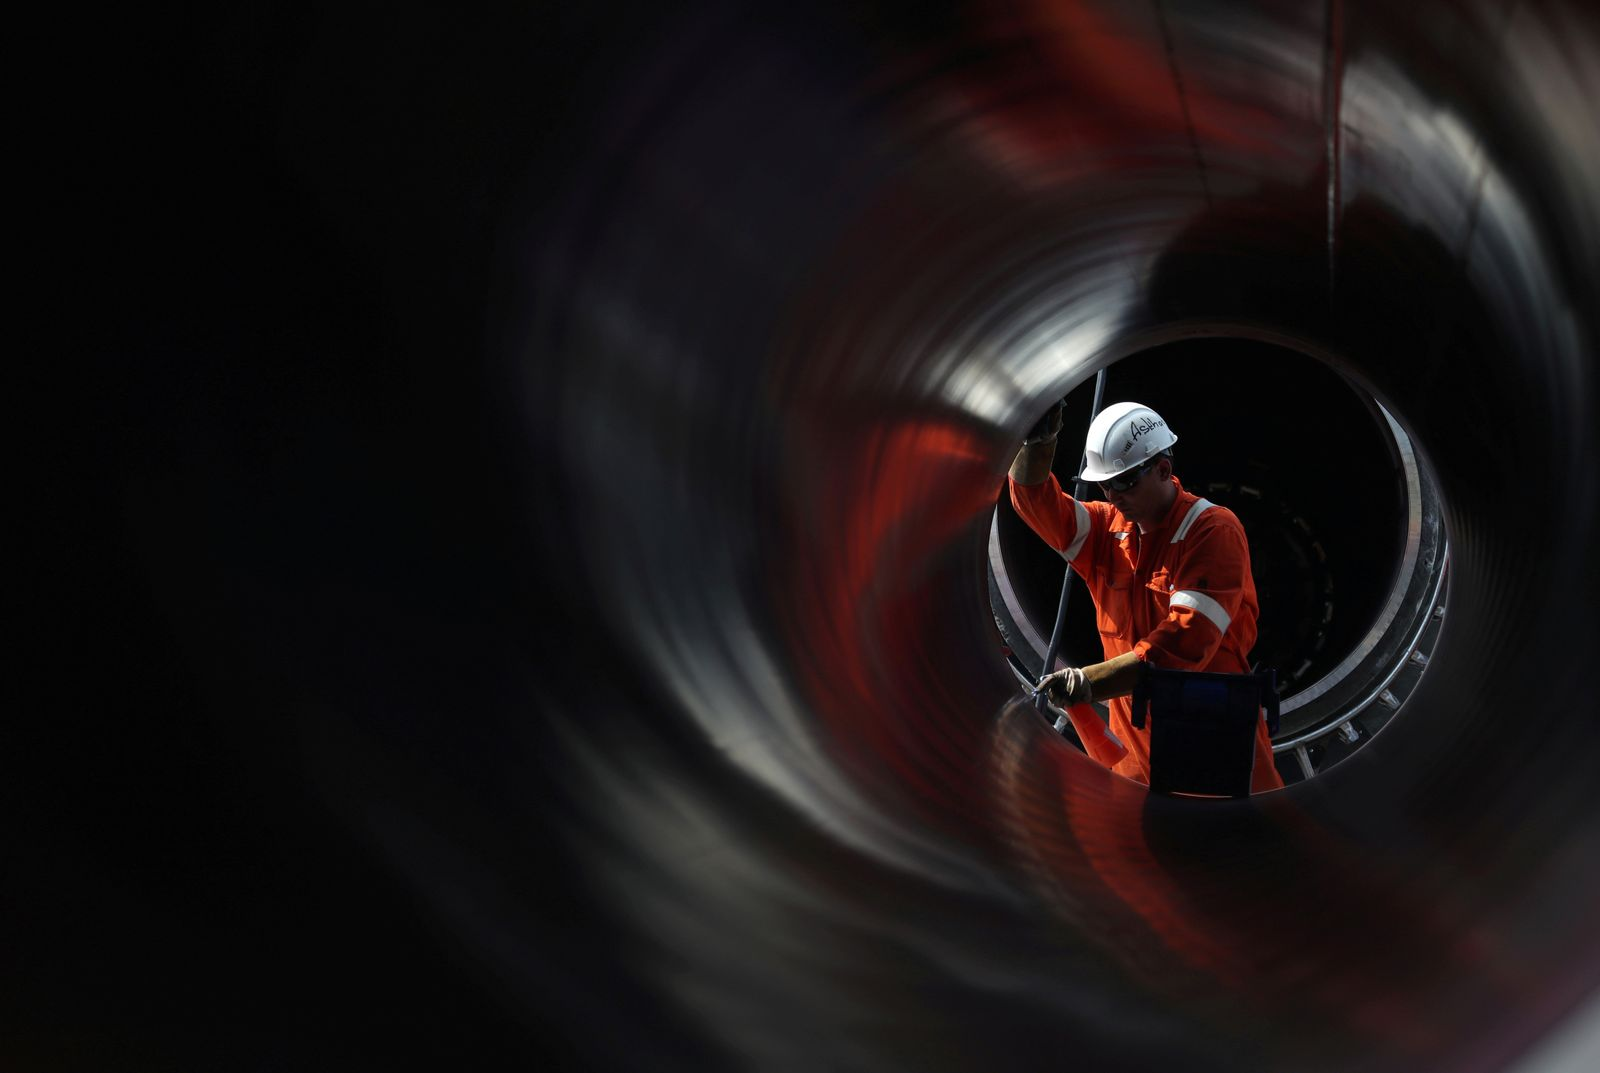 FILE PHOTO: A worker is seen through a pipe at the construction site of the Nord Stream 2 gas pipeline in Russia